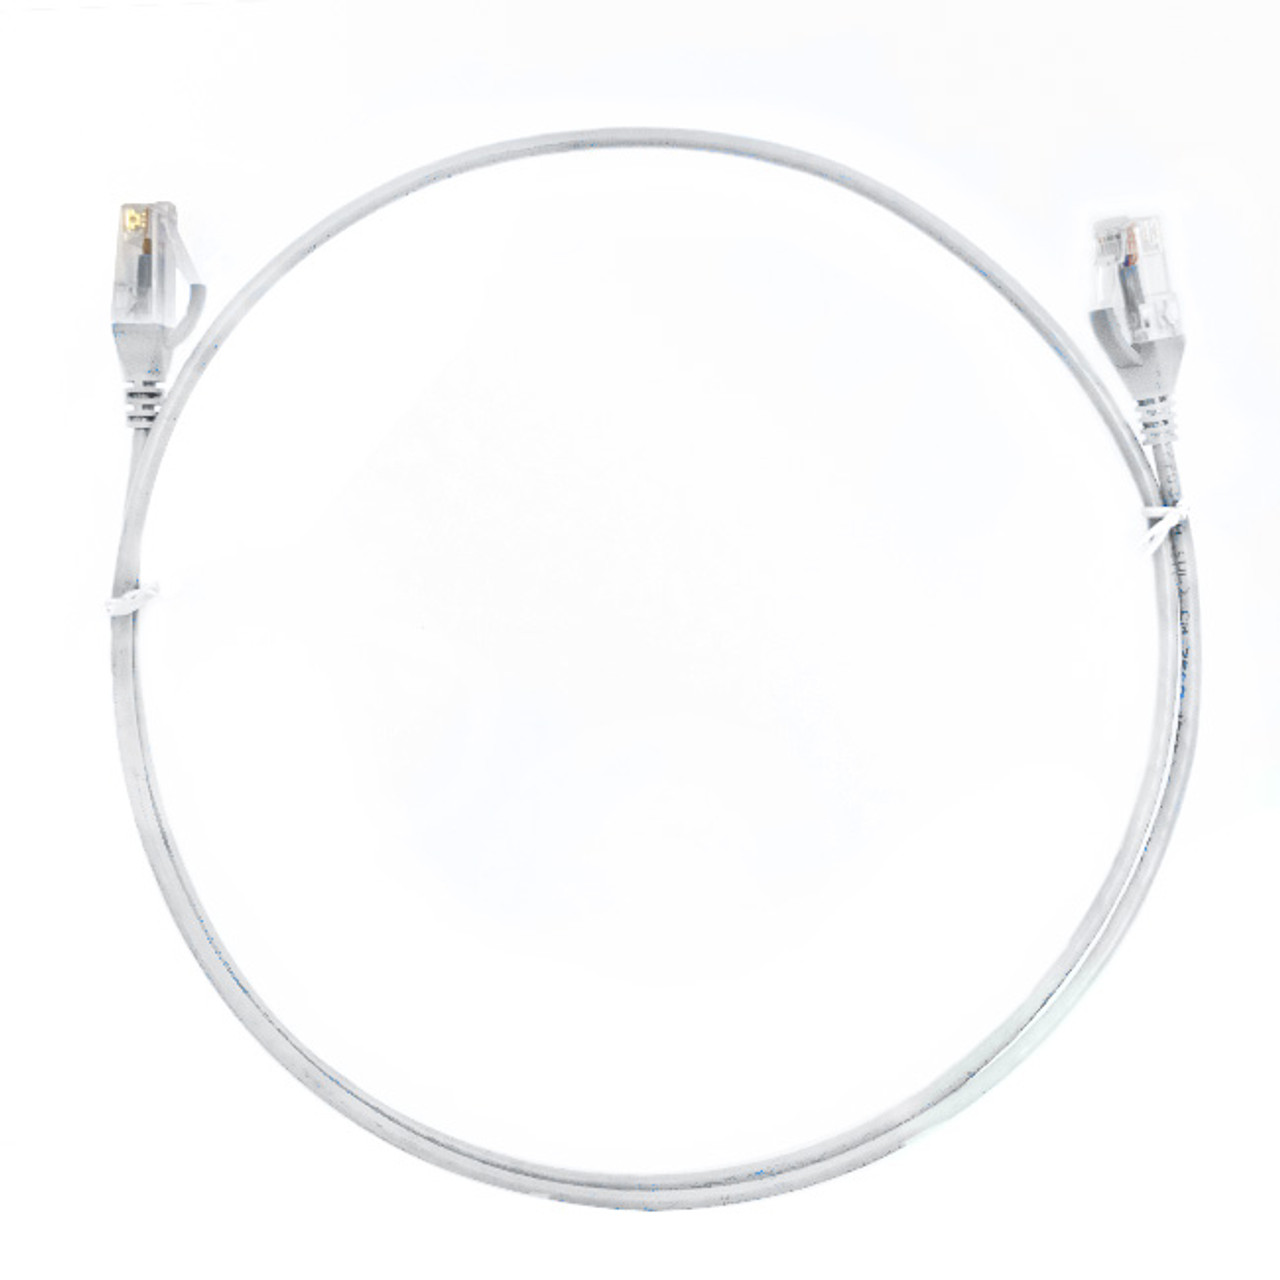 Image for 2m Cat 6 Ultra Thin LSZH Ethernet Network Cables: White CX Computer Superstore